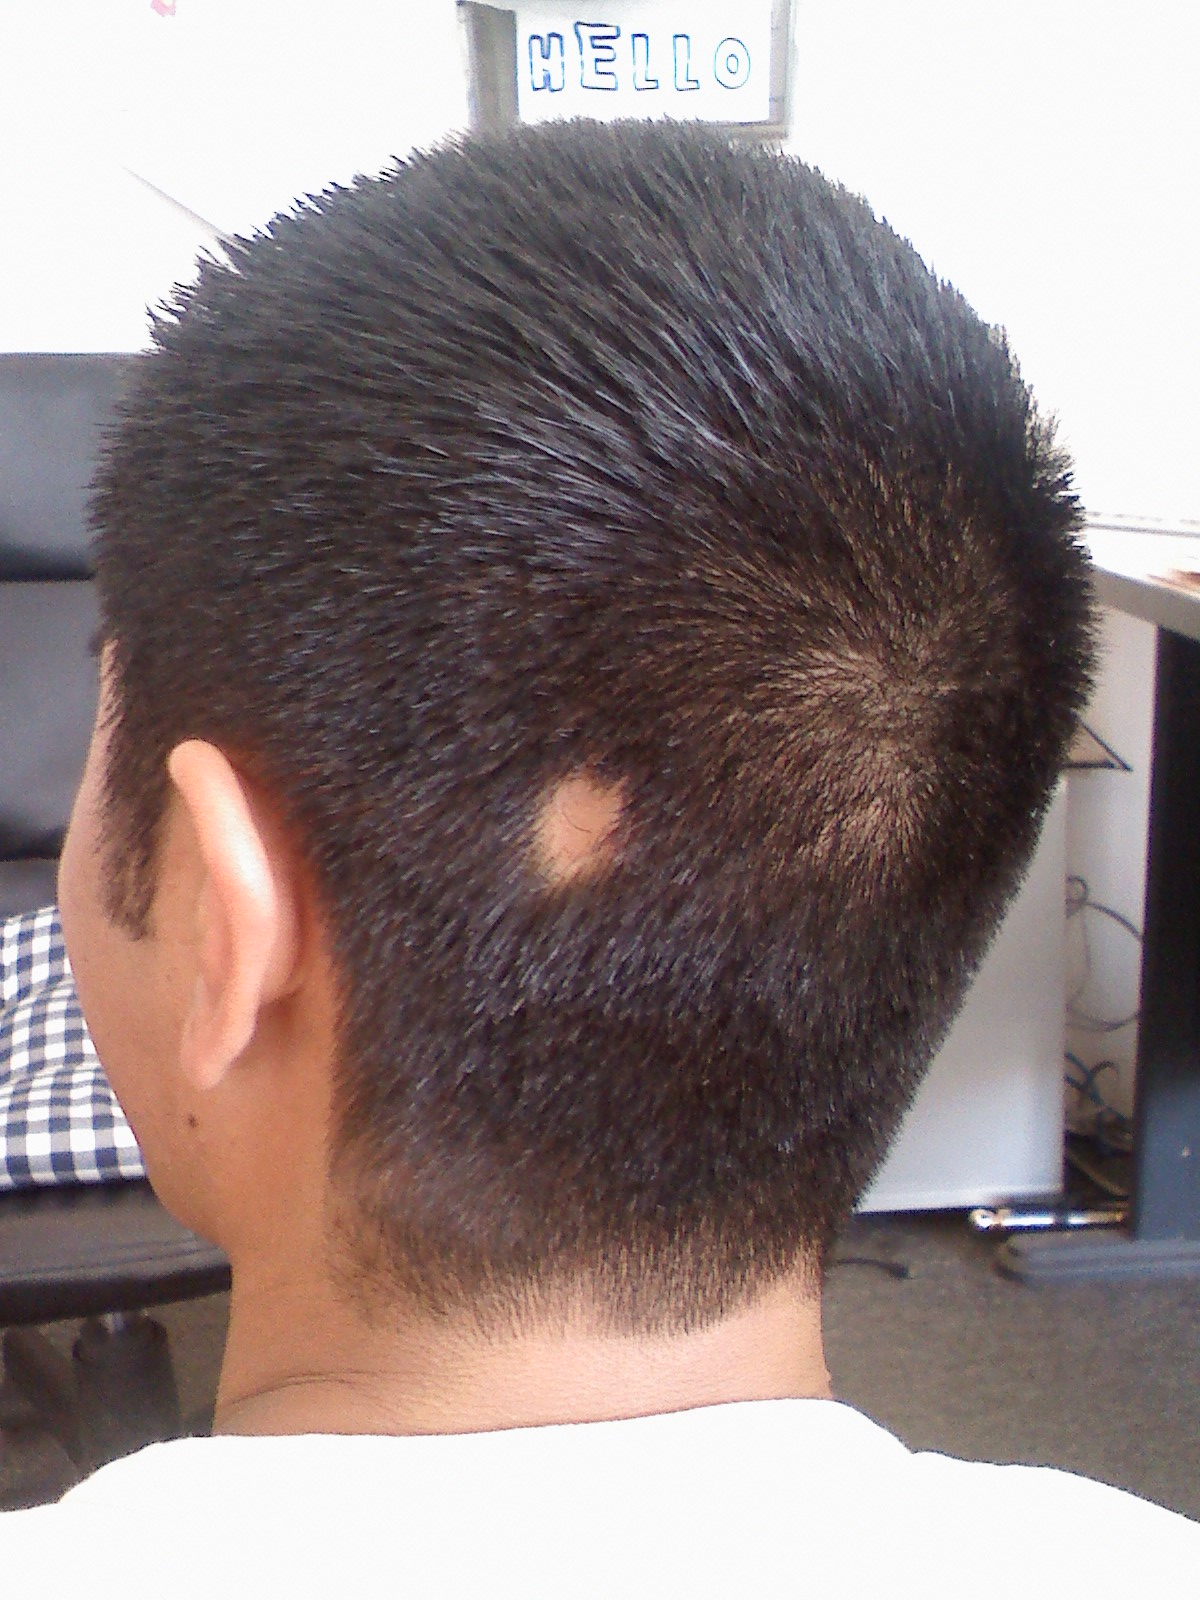 File:Alopecia areata bald spot.jpg - Wikimedia Commons